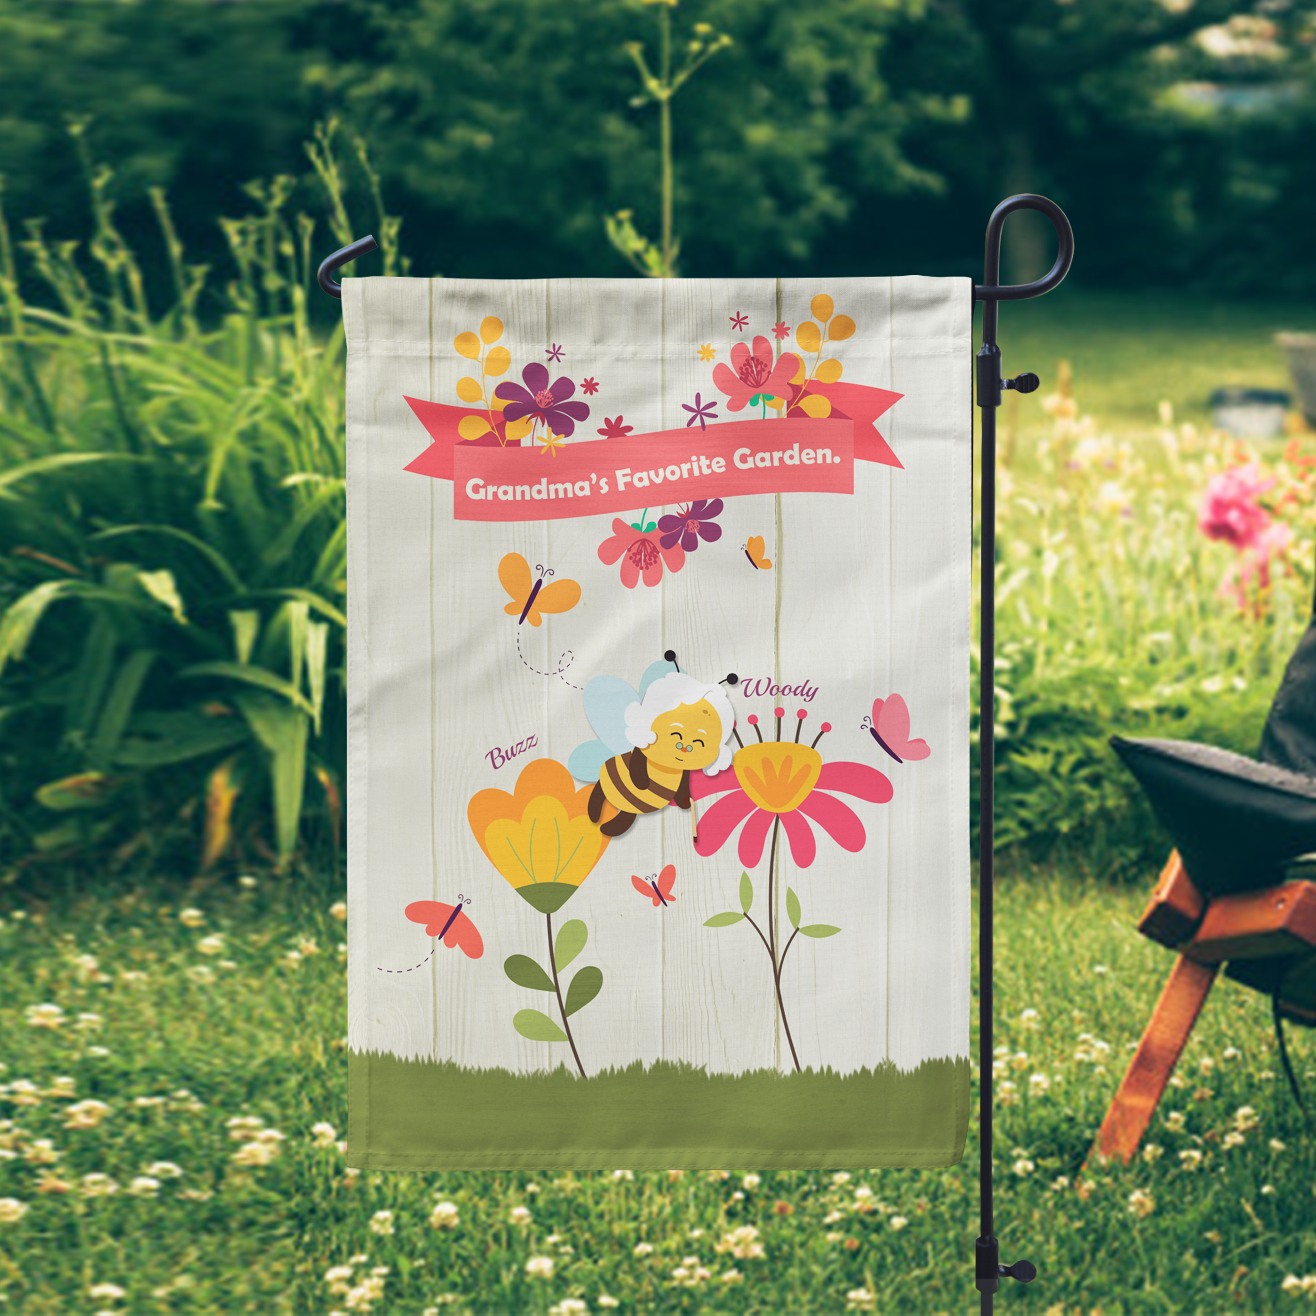 Does your mom love gardening? If yes, why not buy this unique mom garden flag for mom's garden? The flag with a colorful design features dad and mom bees, pretty flowers, and butterflies on the green grass. Bees are nourishing flowers like the ways mom and dad care about you and wish you bloom colorfully. This impressive keepsake will absolutely make mom's garden more vivid and help her feel happier when gardening